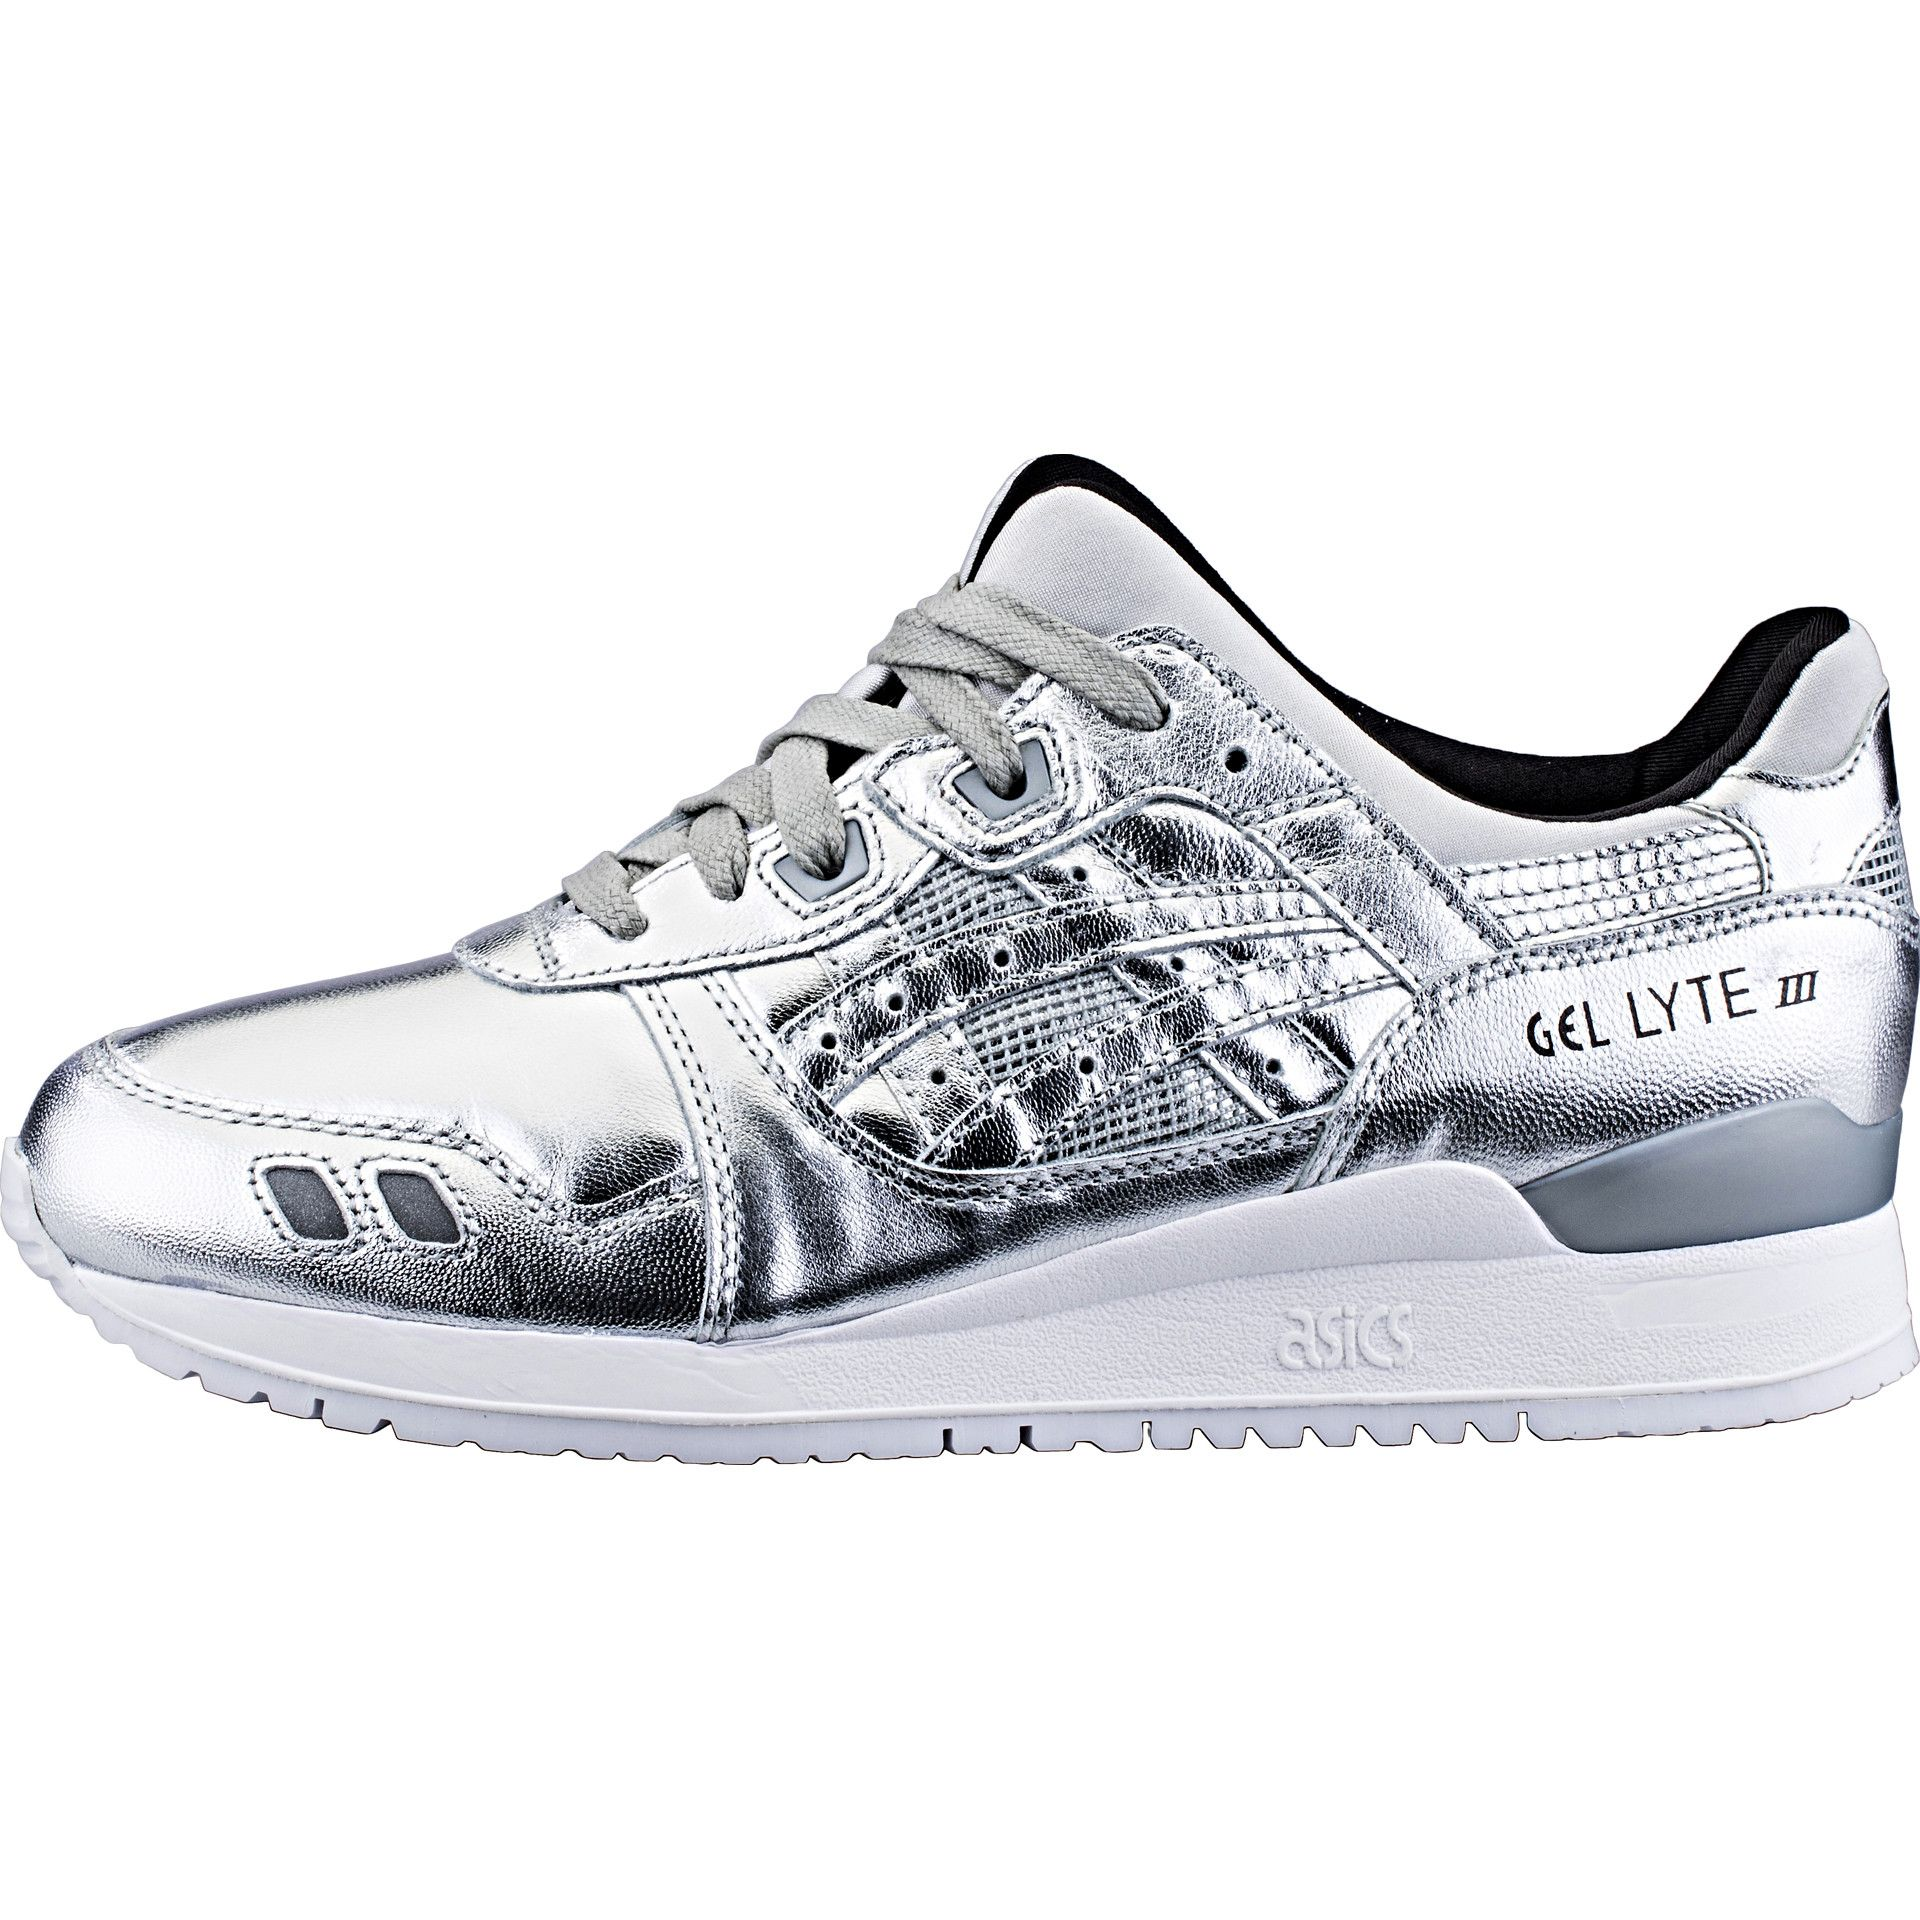 Asics Gel 10817 | Argent Lyte III (Hommes) Champagne Argent | 80e0f3a - swzone.info